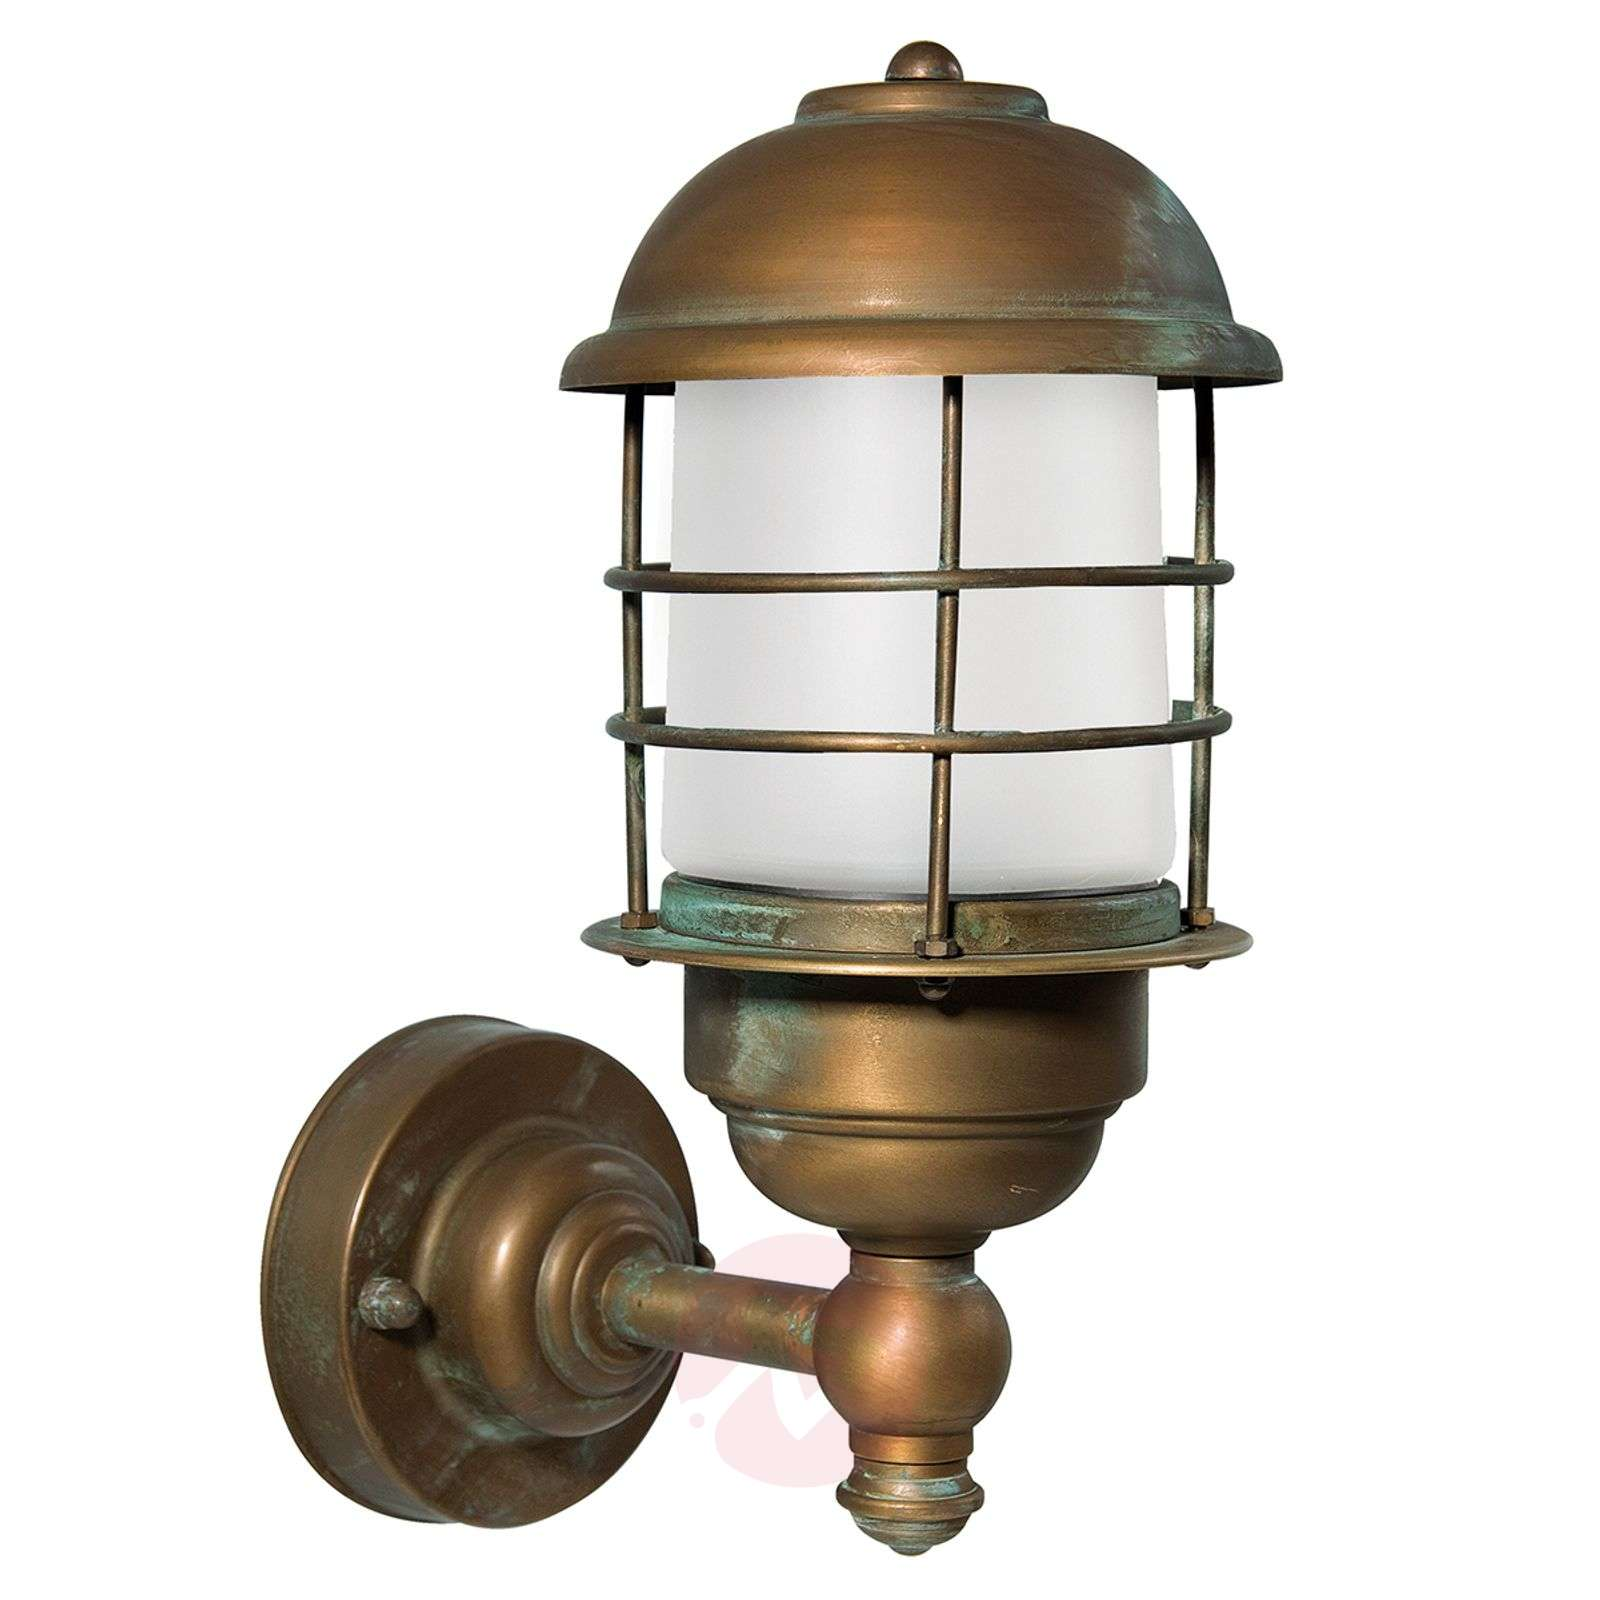 Brass outdoor wall lamp Amando, seawater-resistant-6515353-01